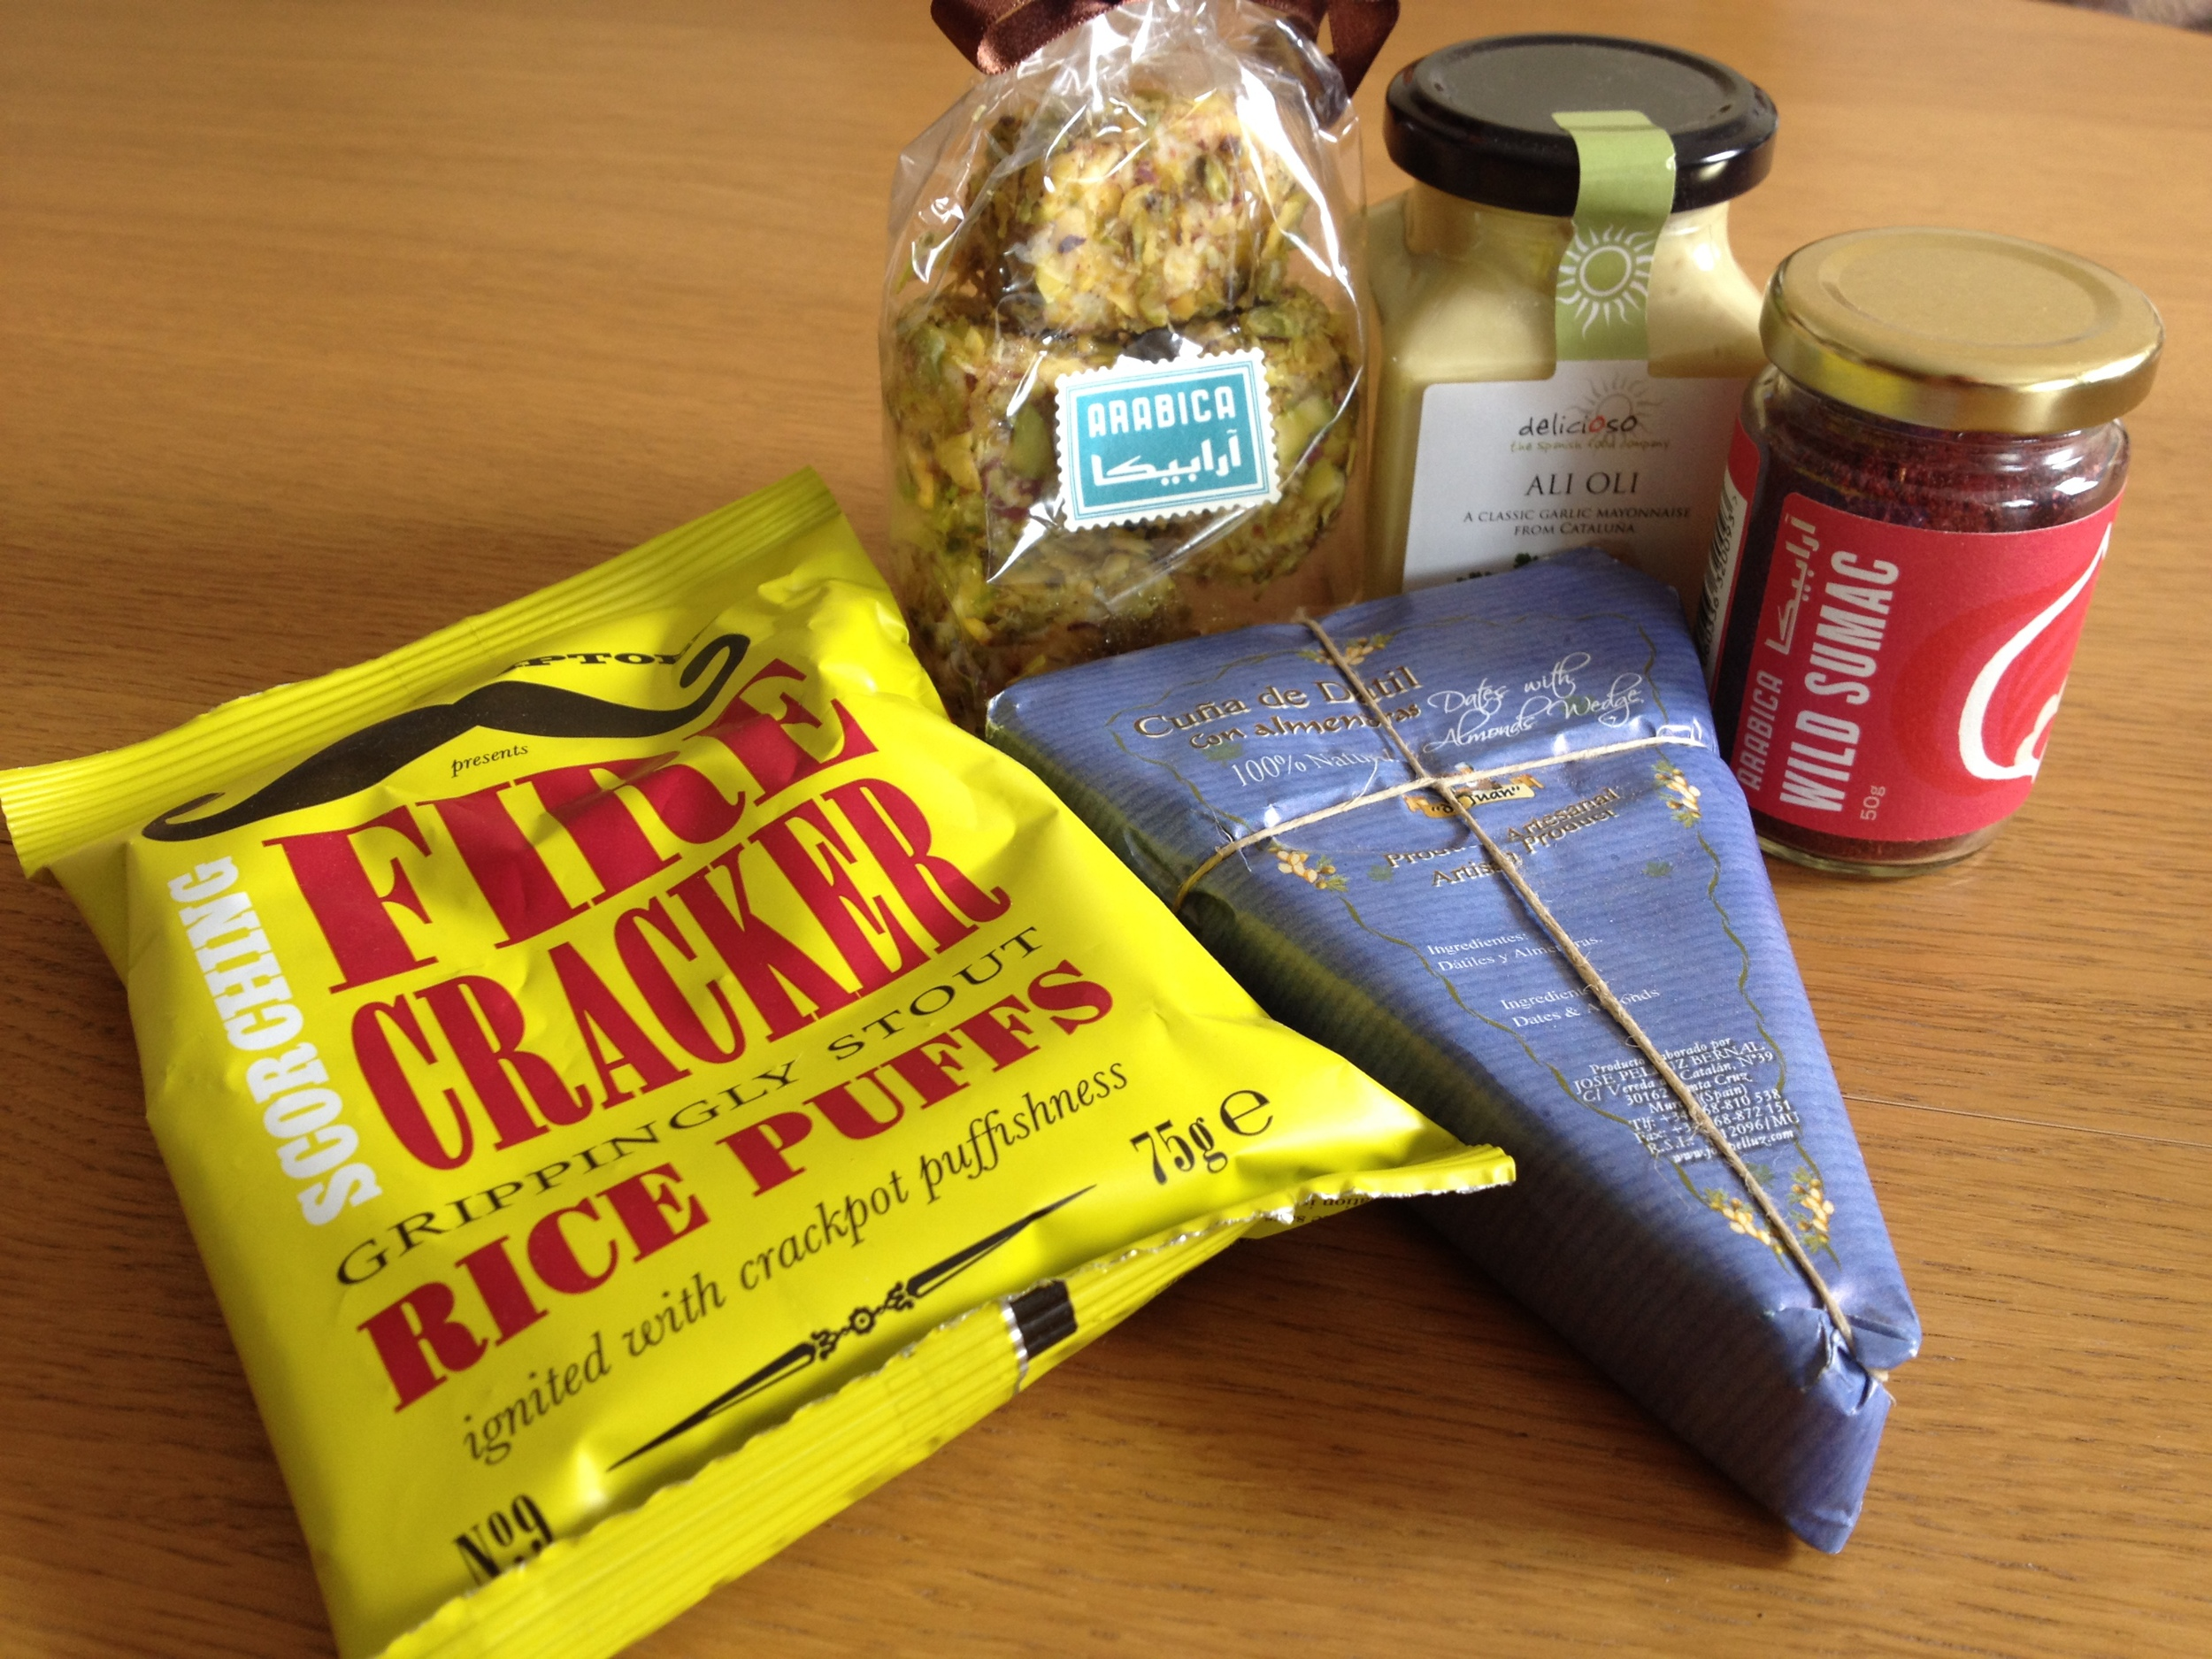 Contents of my first Flavrbox delivery, photo by Paul Forrester